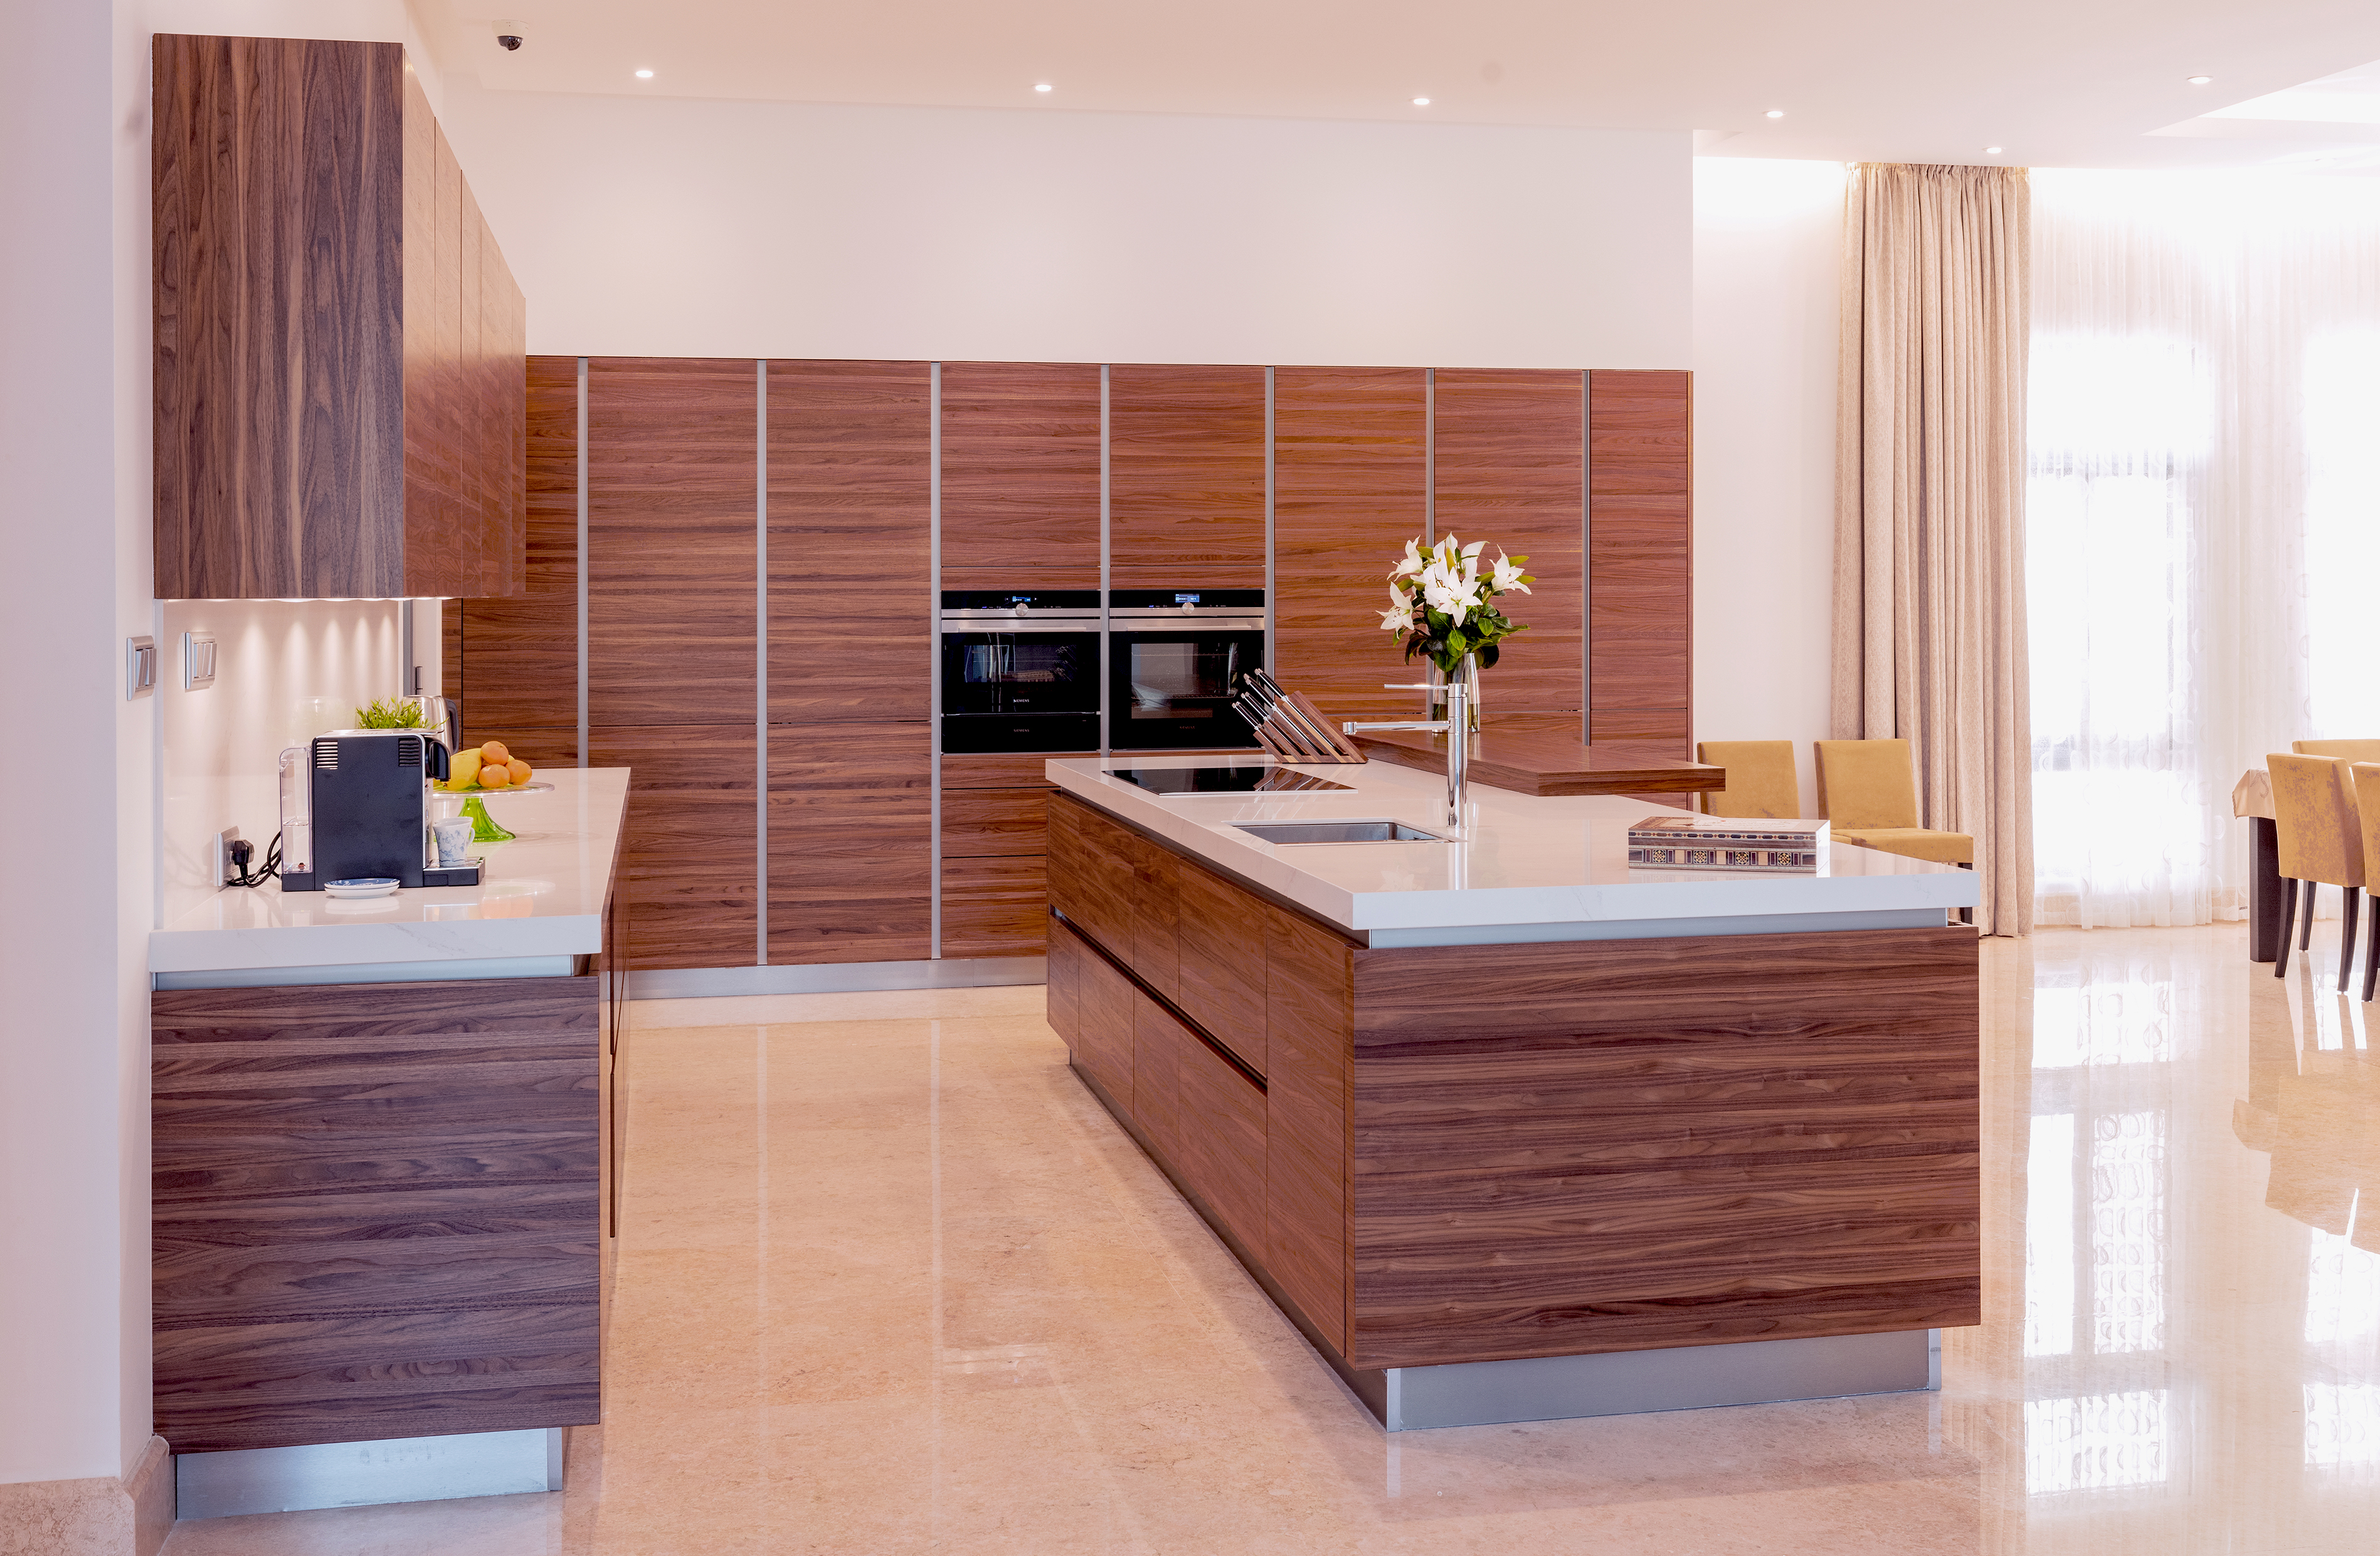 MC Umm Suqeim (Dubai) Villa Kitchen project by Goettling Interiors